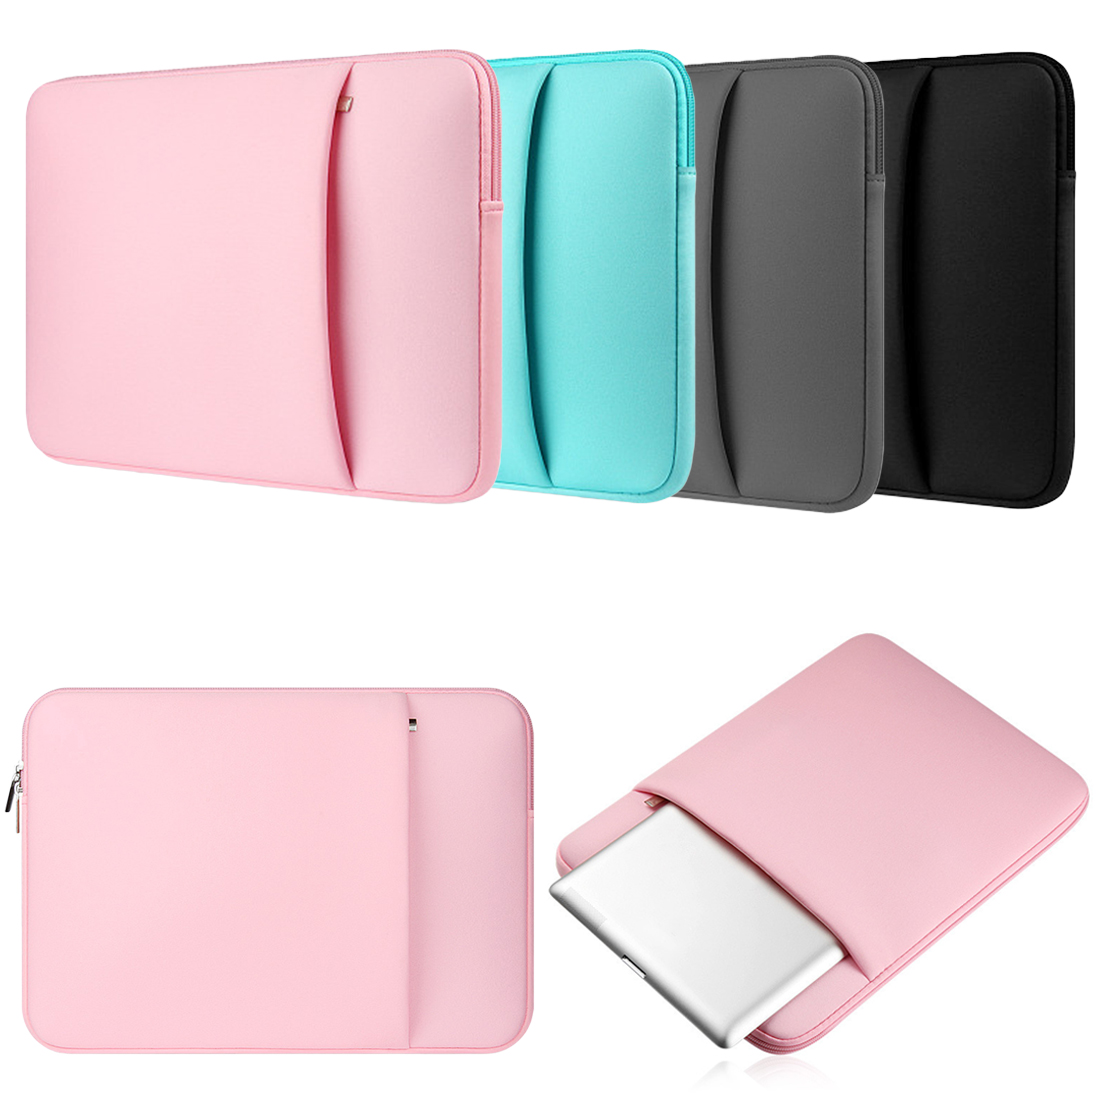 Laptop Sleeve Notebook Bag For Macbook Air 13 Pro 11 12 15 15.6 Case Laptop Bag 11 13 14 15 Inch Protective Case Liner Bags